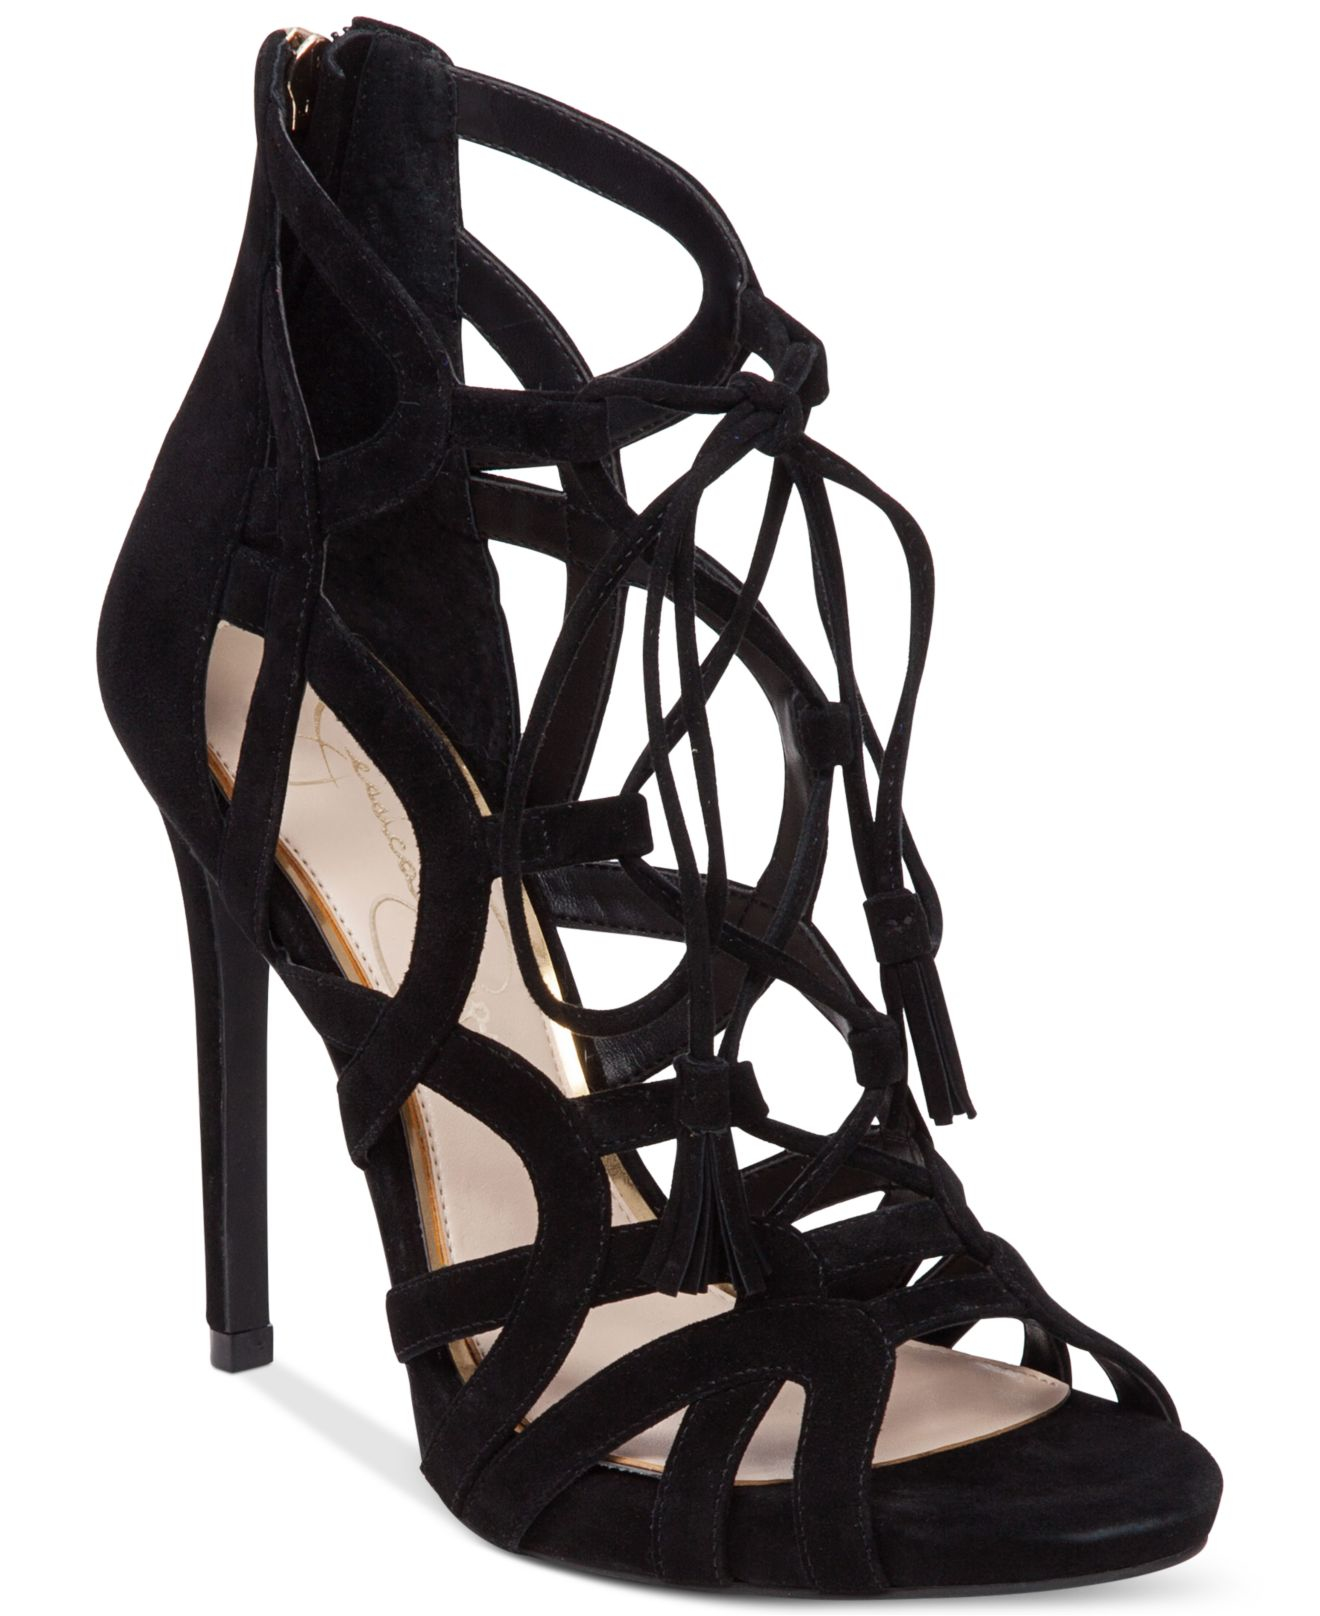 Jessica Simpson Strappy Heels xQpfqqwY